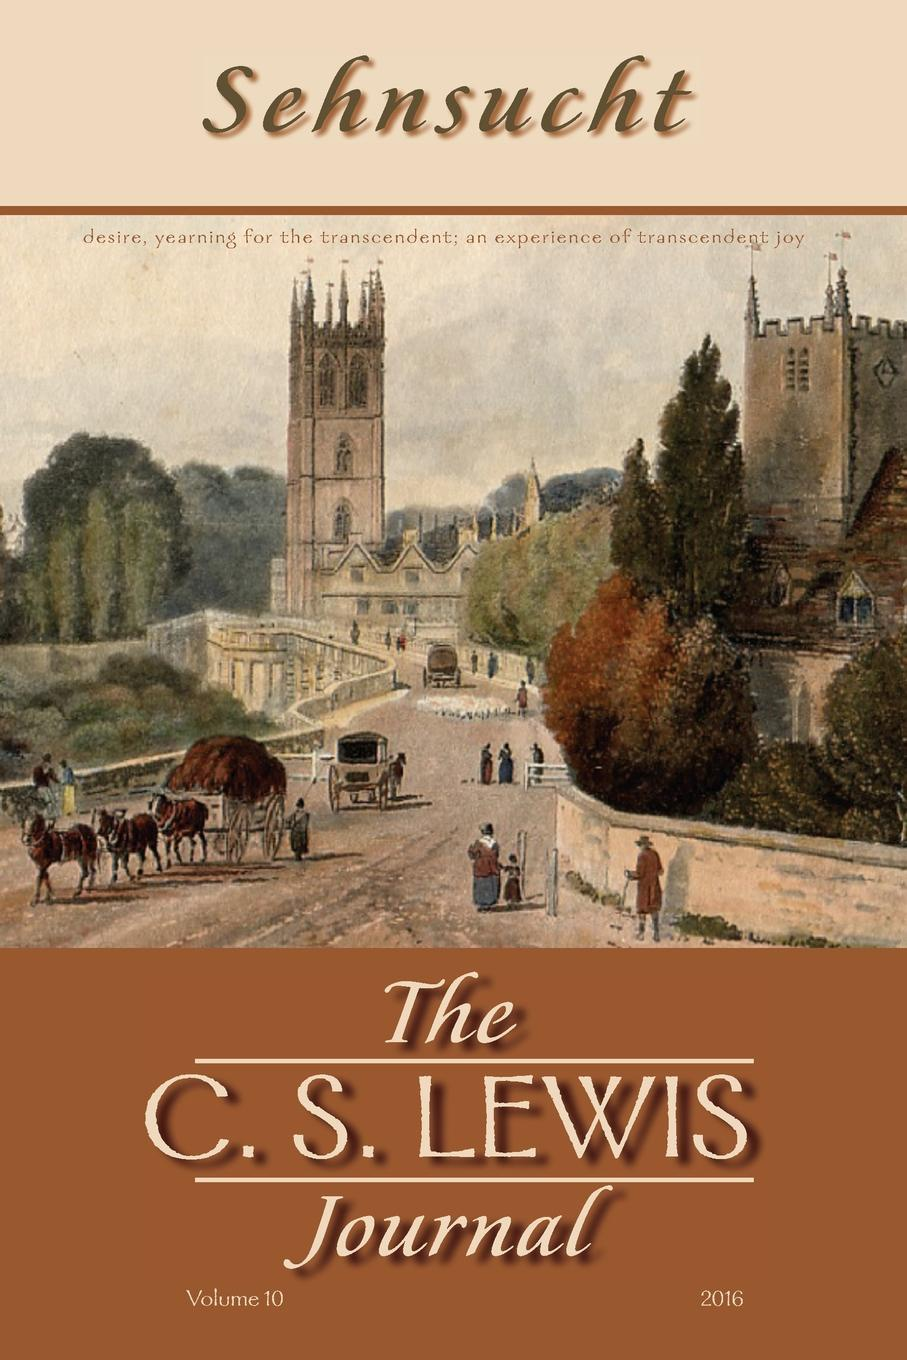 Sehnsucht. The C. S. Lewis Journal a glimpse of heaven through the eyes of c s lewis dr tony evans calvin miller randy alcorn j oswald sanders john wesley and other